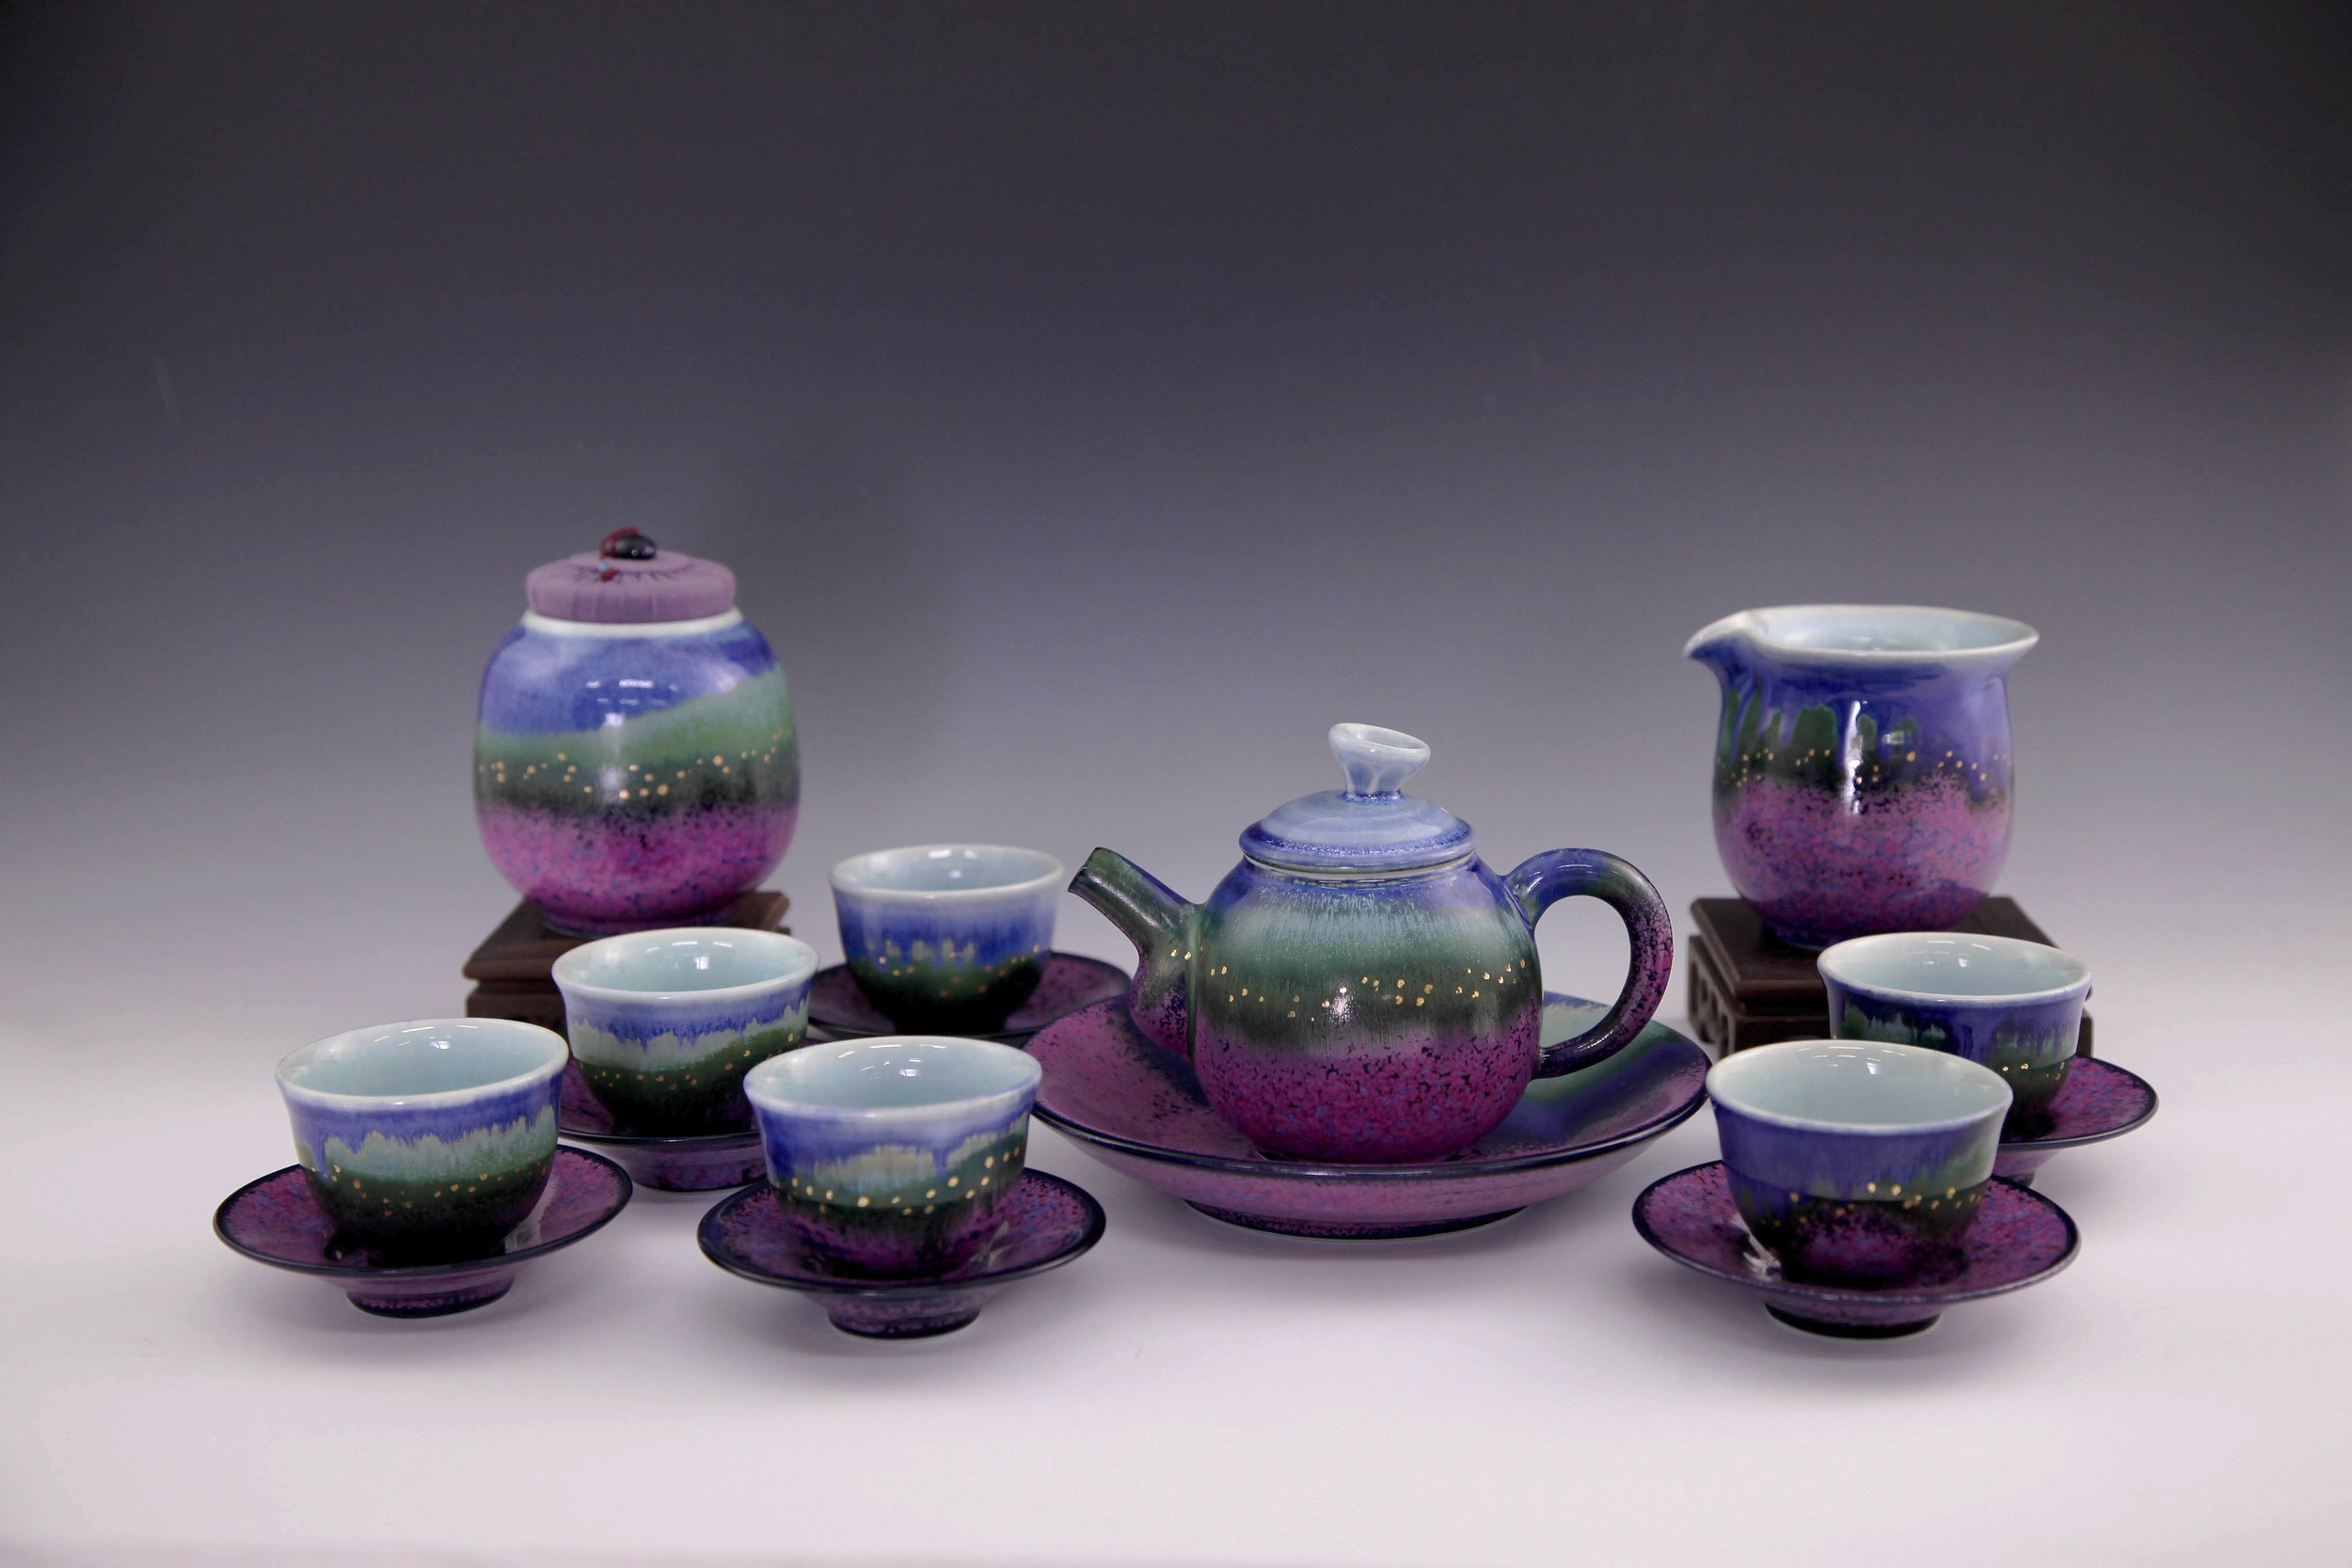 lavender tea set1.jpg